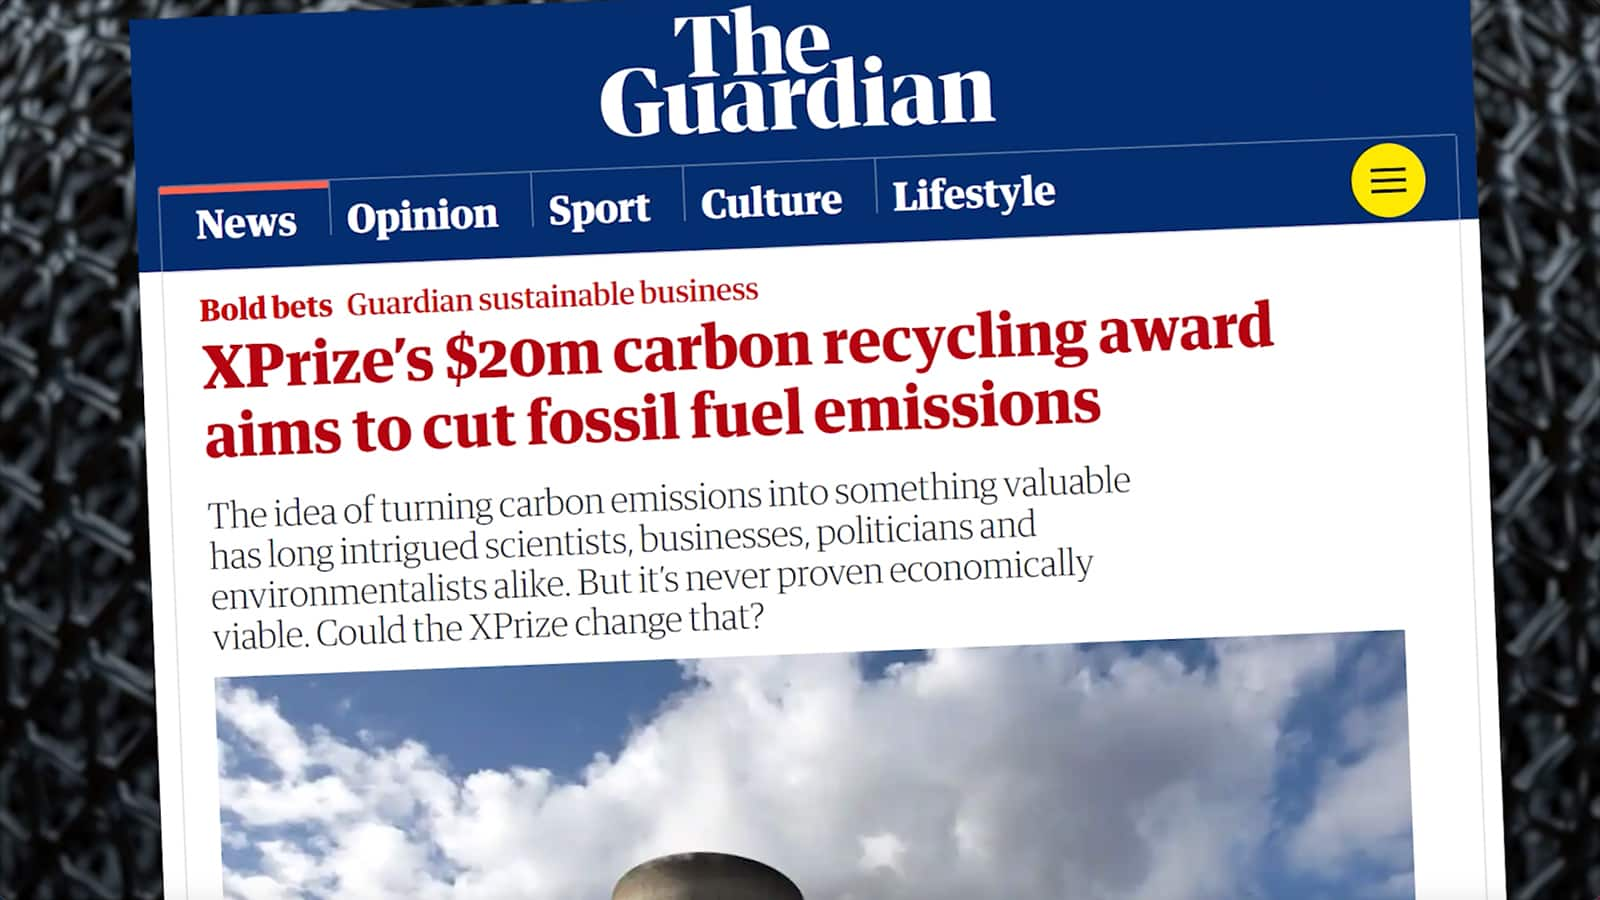 XPRIZE article on The Guardian website showcasing Green Rock's work in launching sustainability prize